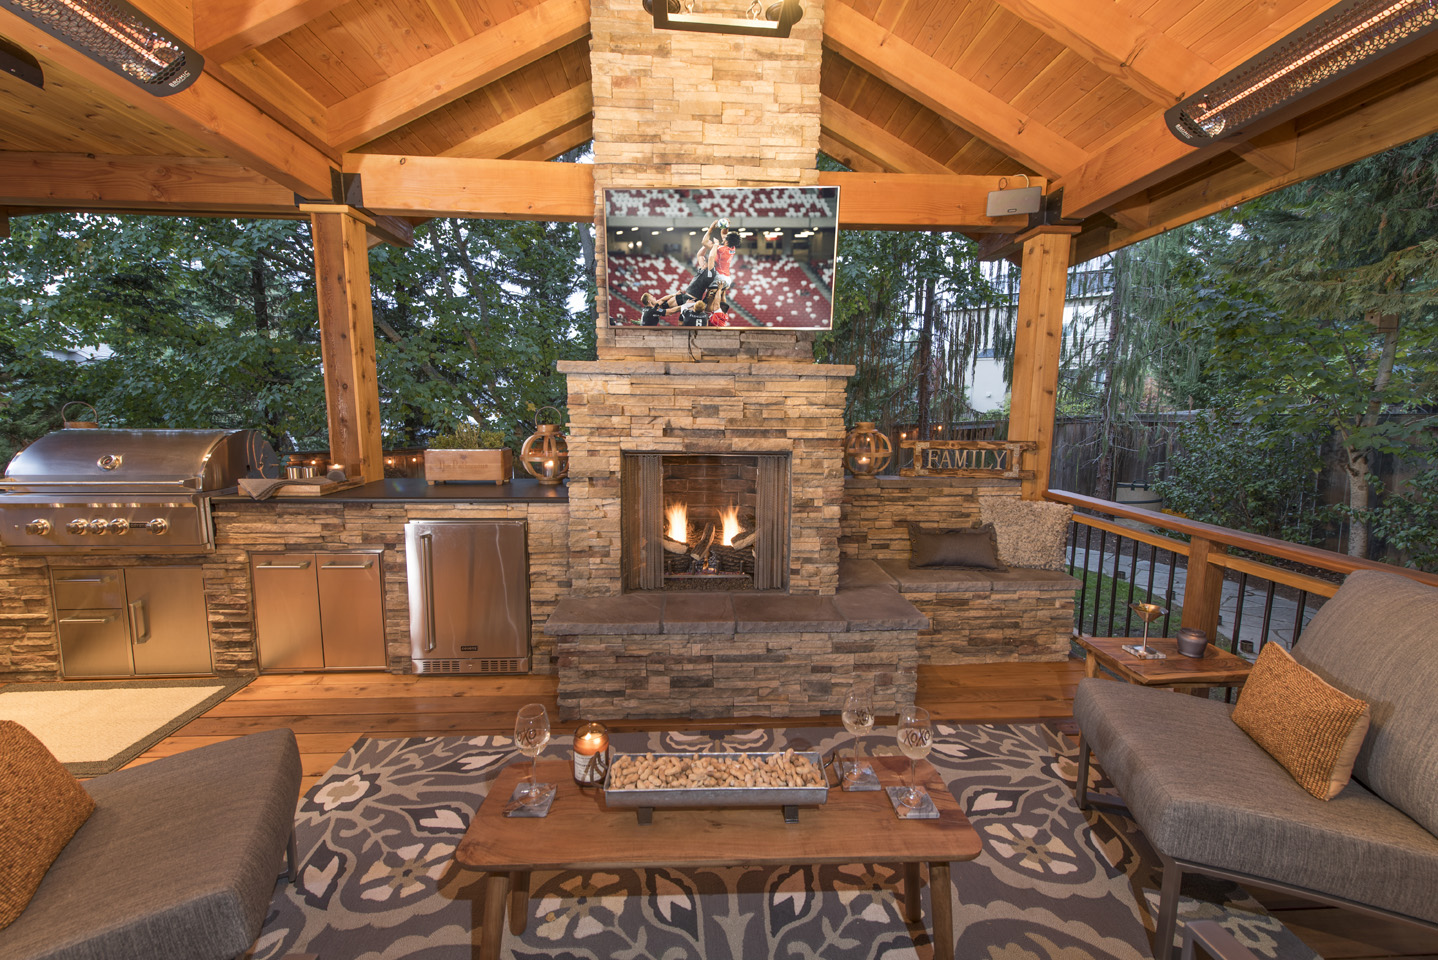 20 Gazebos in Outdoor Living Spaces - Paradise Restored ... on Outdoor Living Patio id=19595